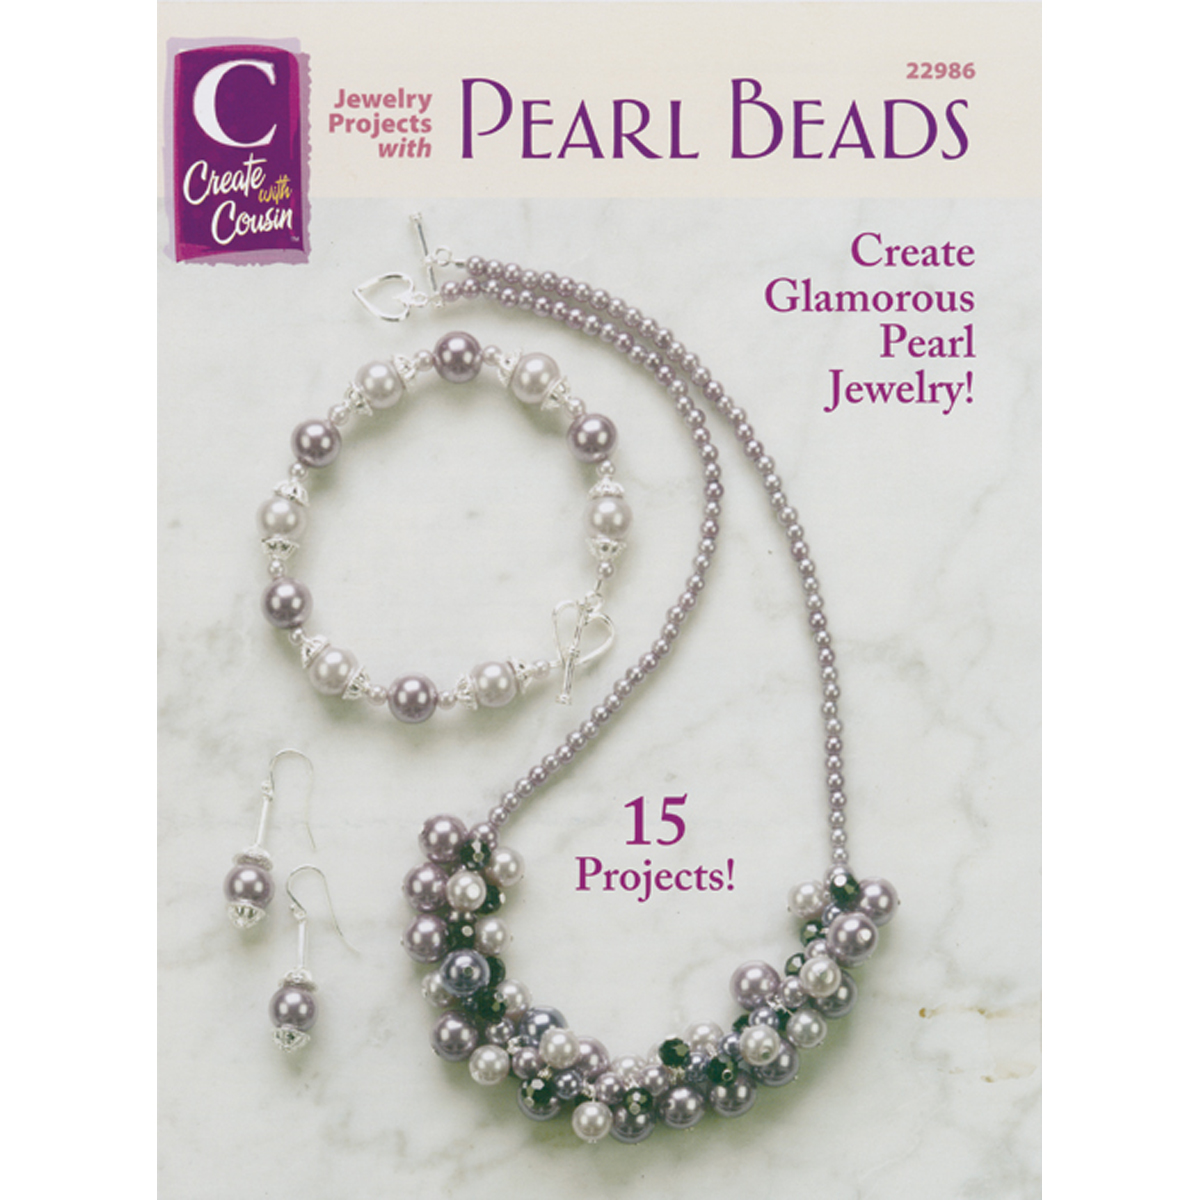 Cousin Corporation Books: Jewelry Projects with Pearl Beads